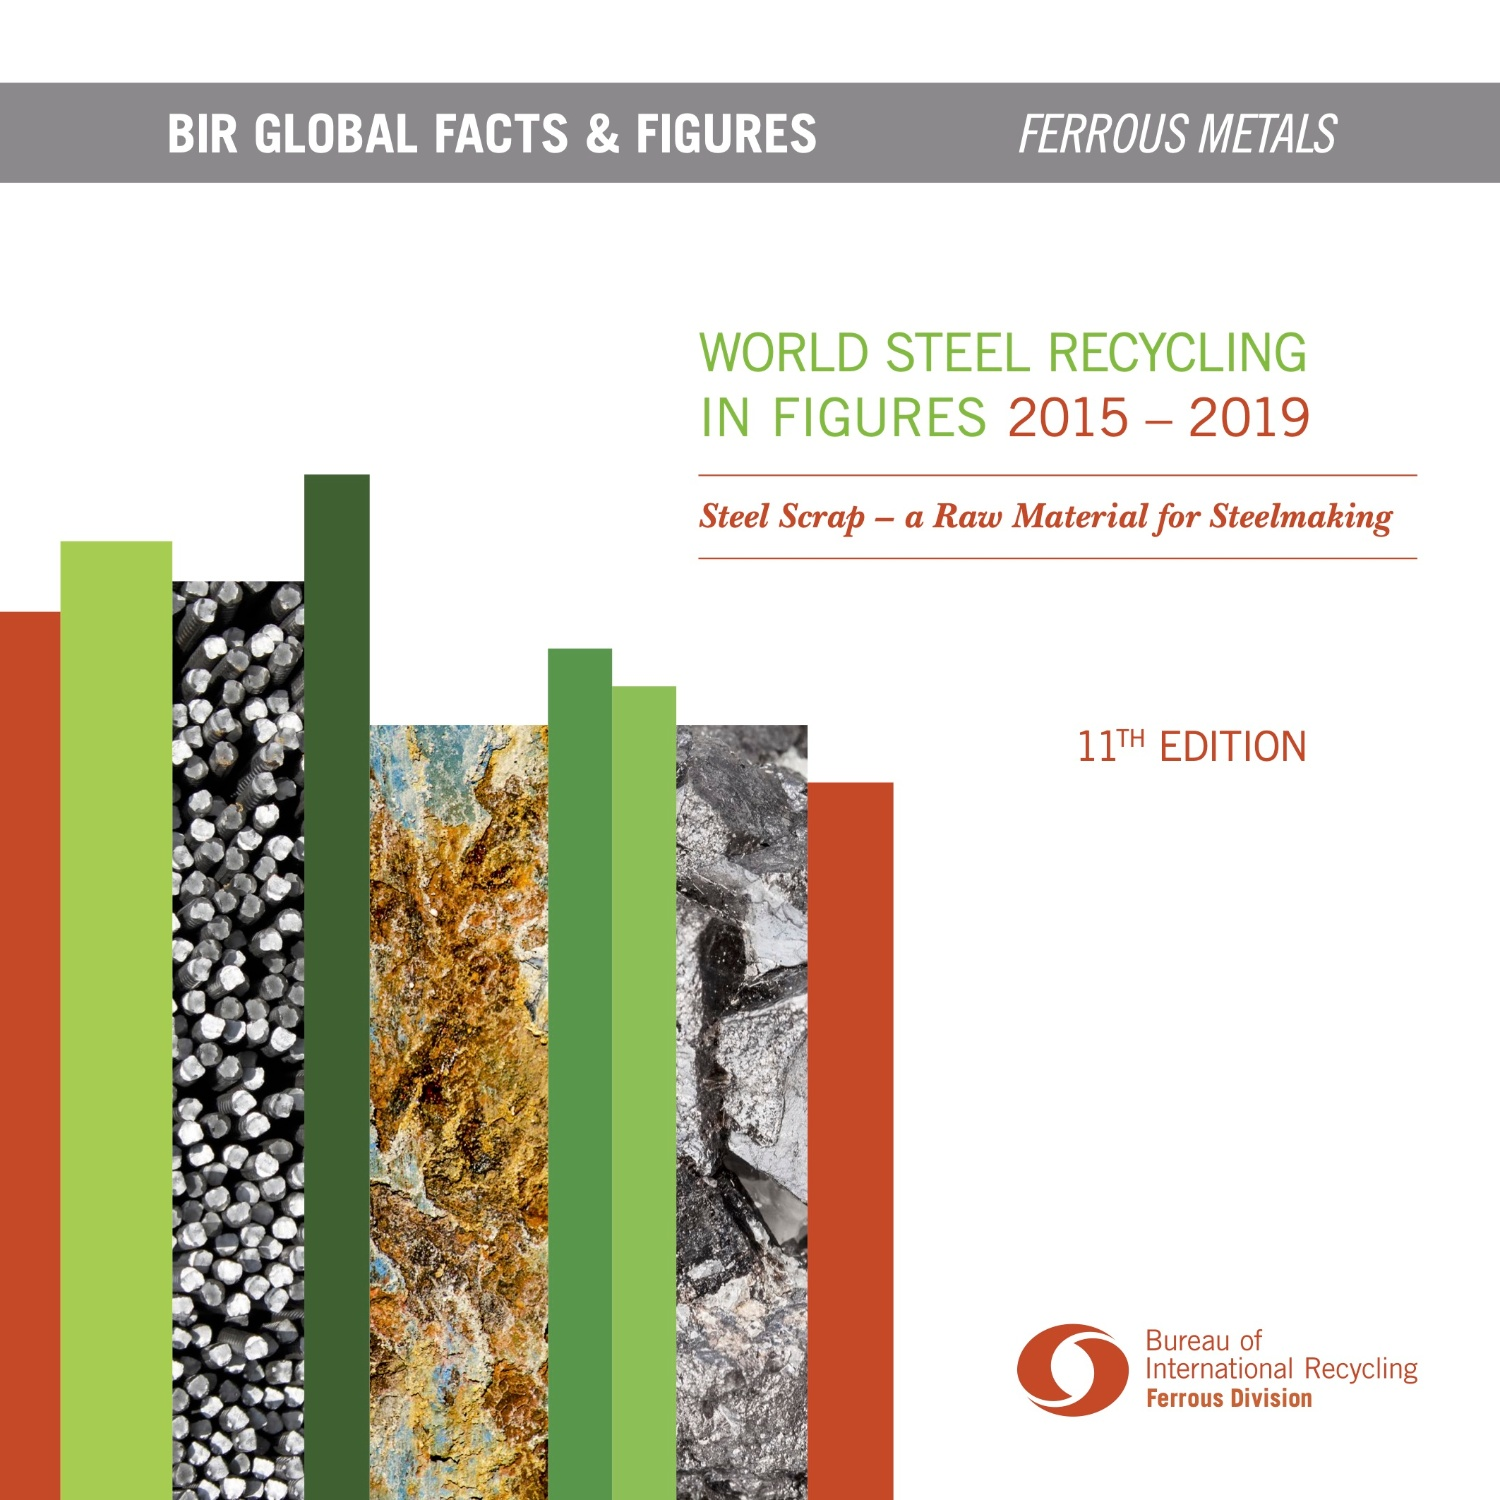 World Steel Recycling in Figures 2015-2019 Image 1